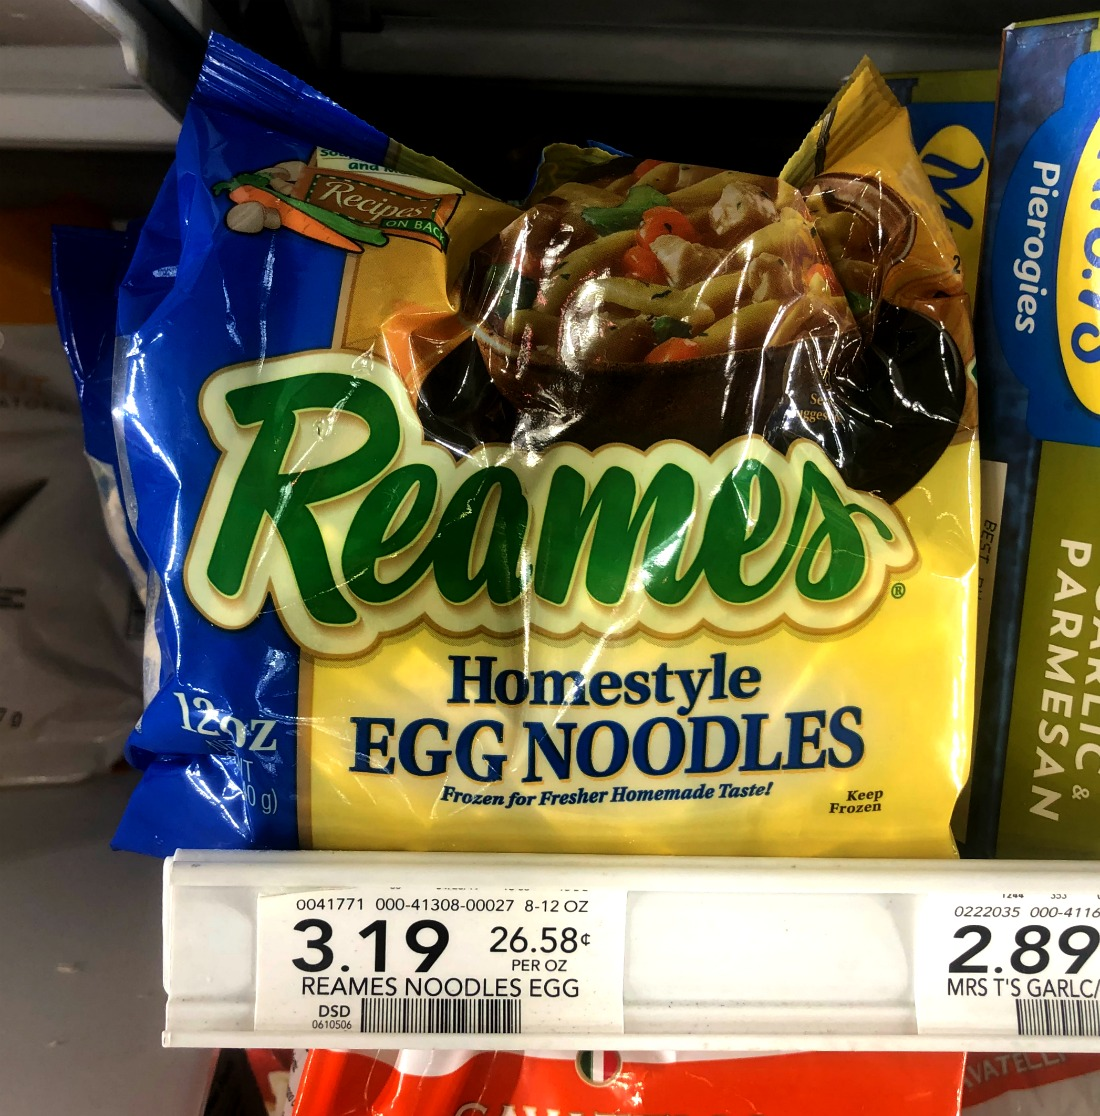 Reames Homestyle Egg Noodles Coupon To Print - Just $2.19 on I Heart Publix